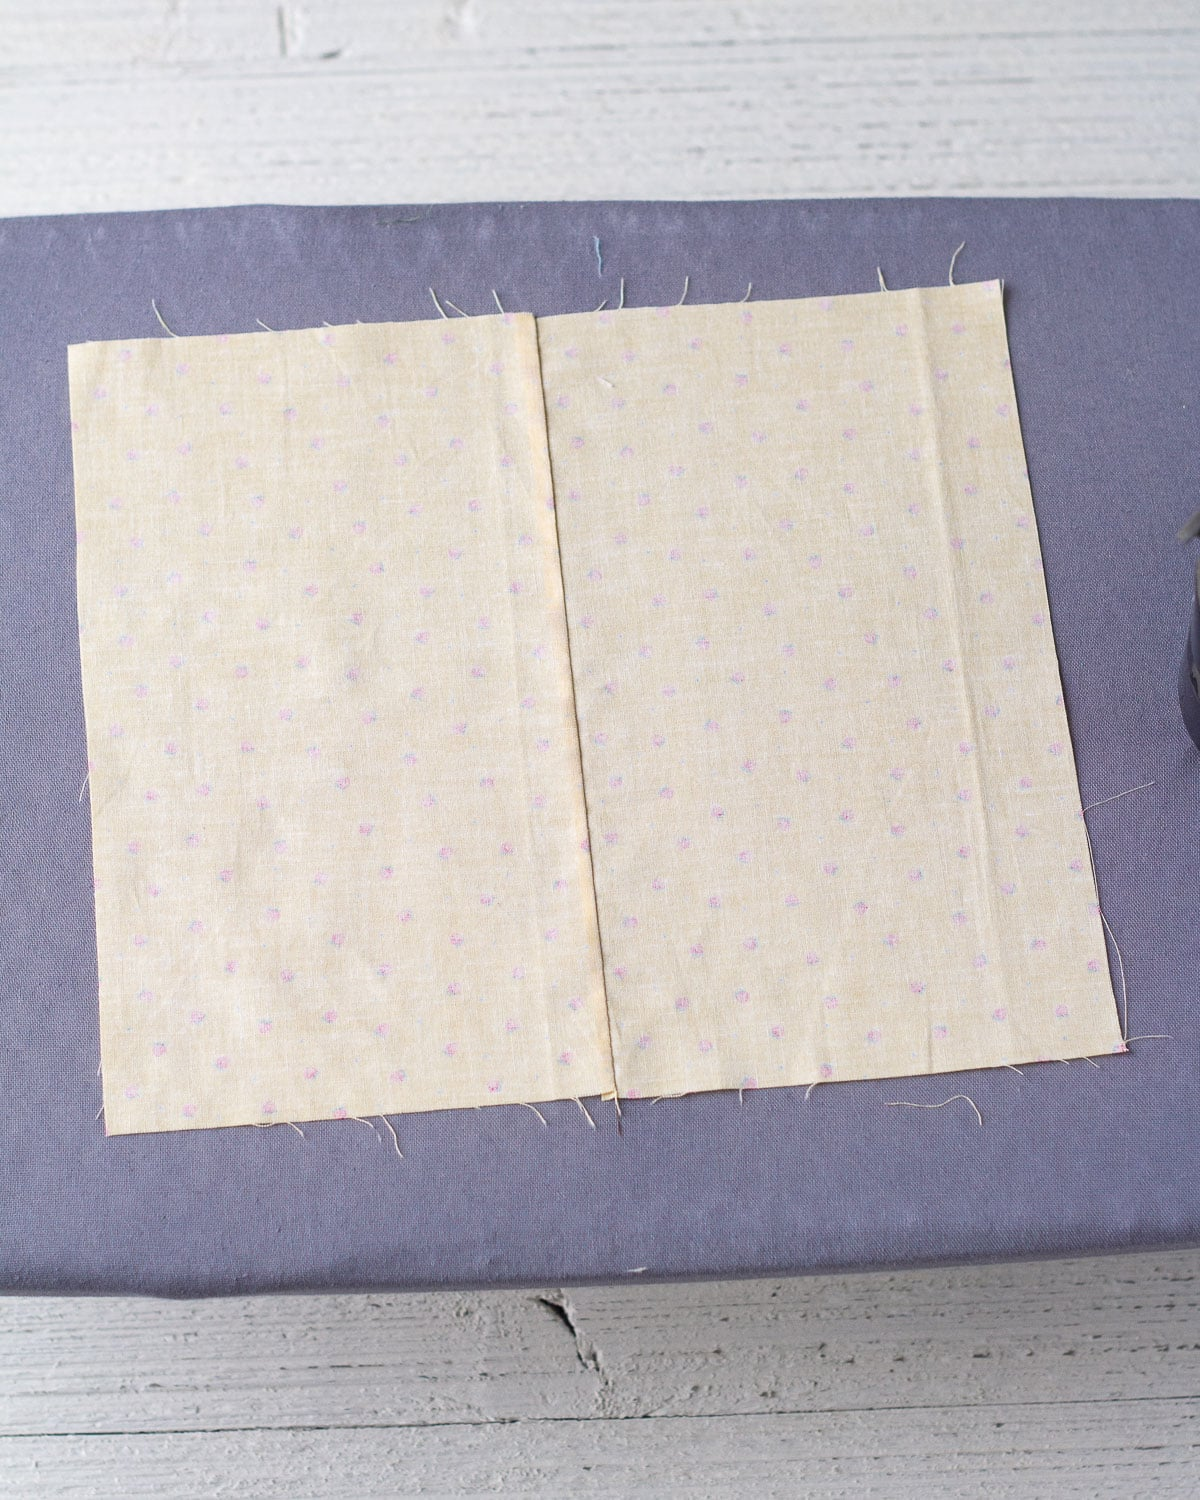 The wrong side of two rectangles of fabric seamed together.